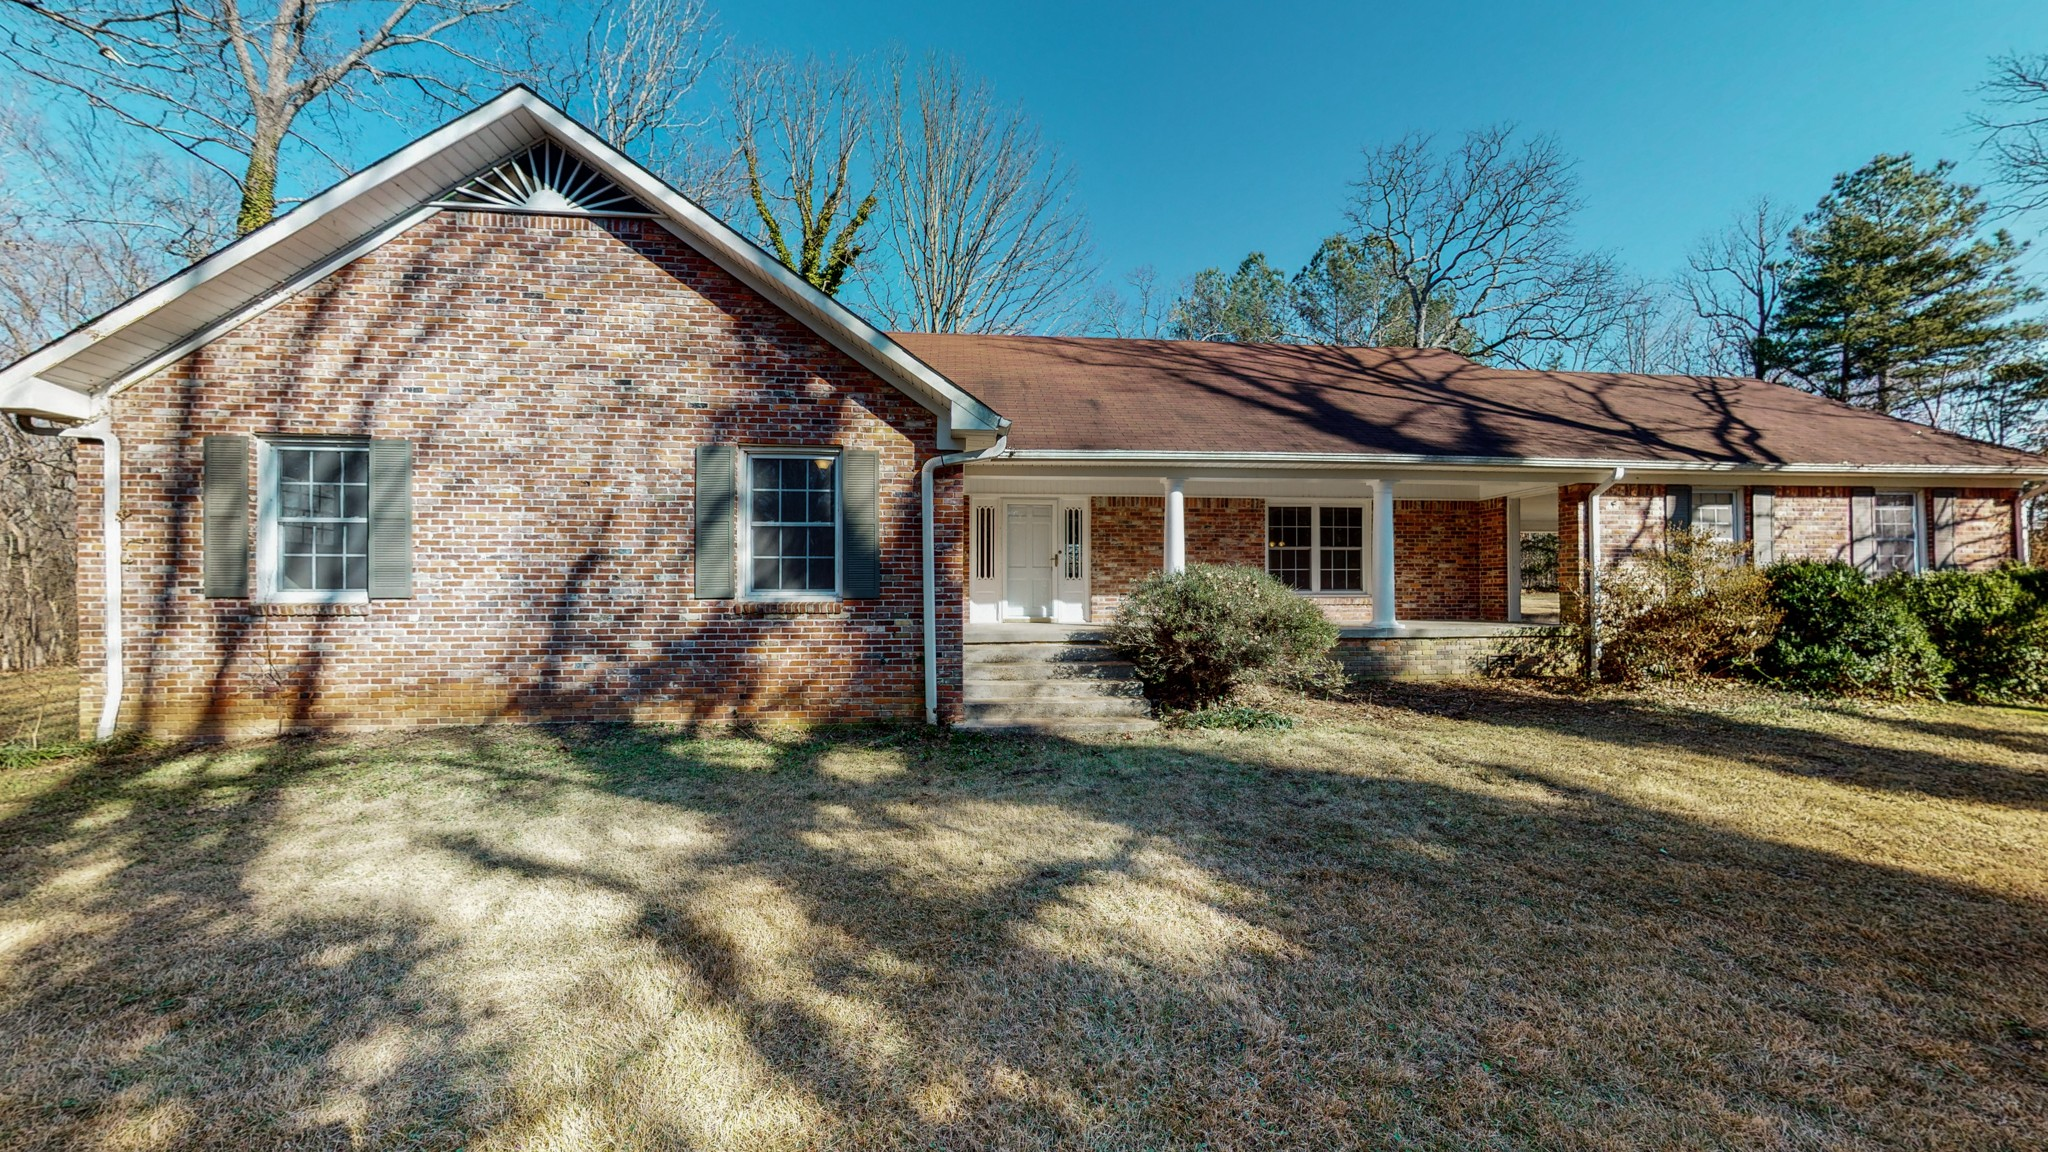 120 York Ln Property Photo - Savannah, TN real estate listing